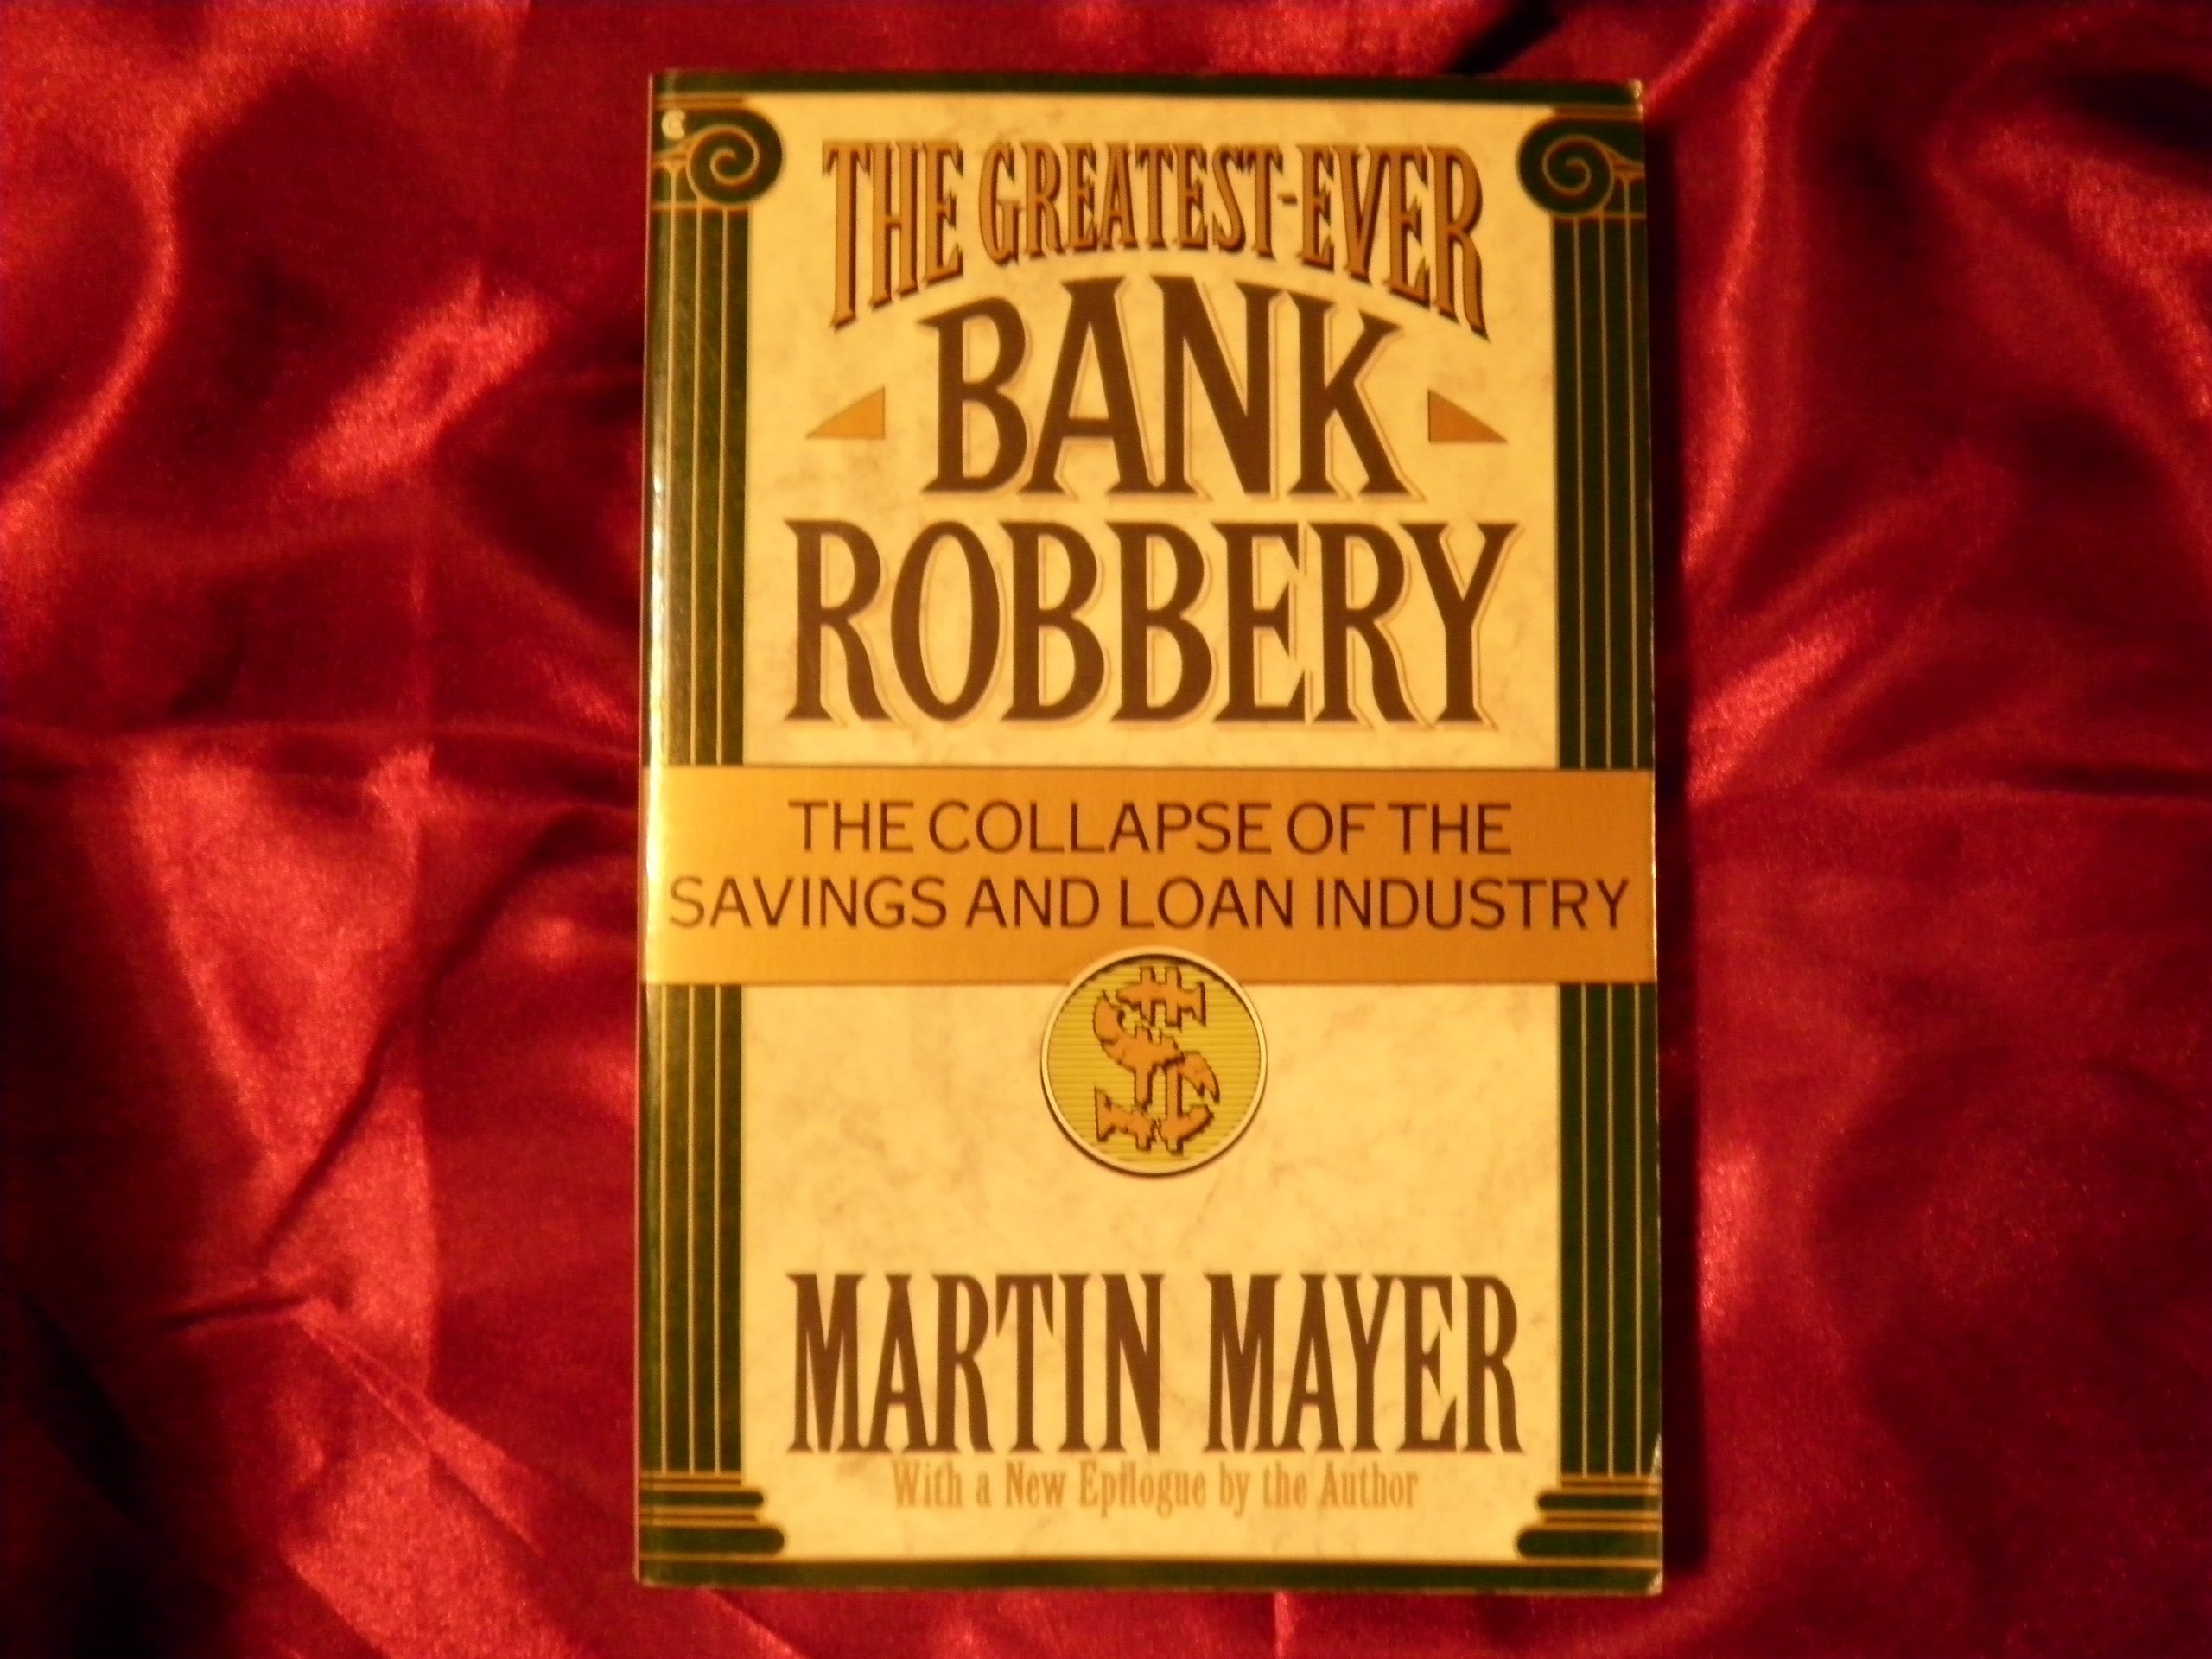 The Greatest Ever Bank Robbery : The Collapse of the Savings and Loan  Industry: Martin Mayer: 9780020126201: Amazon.com: Books